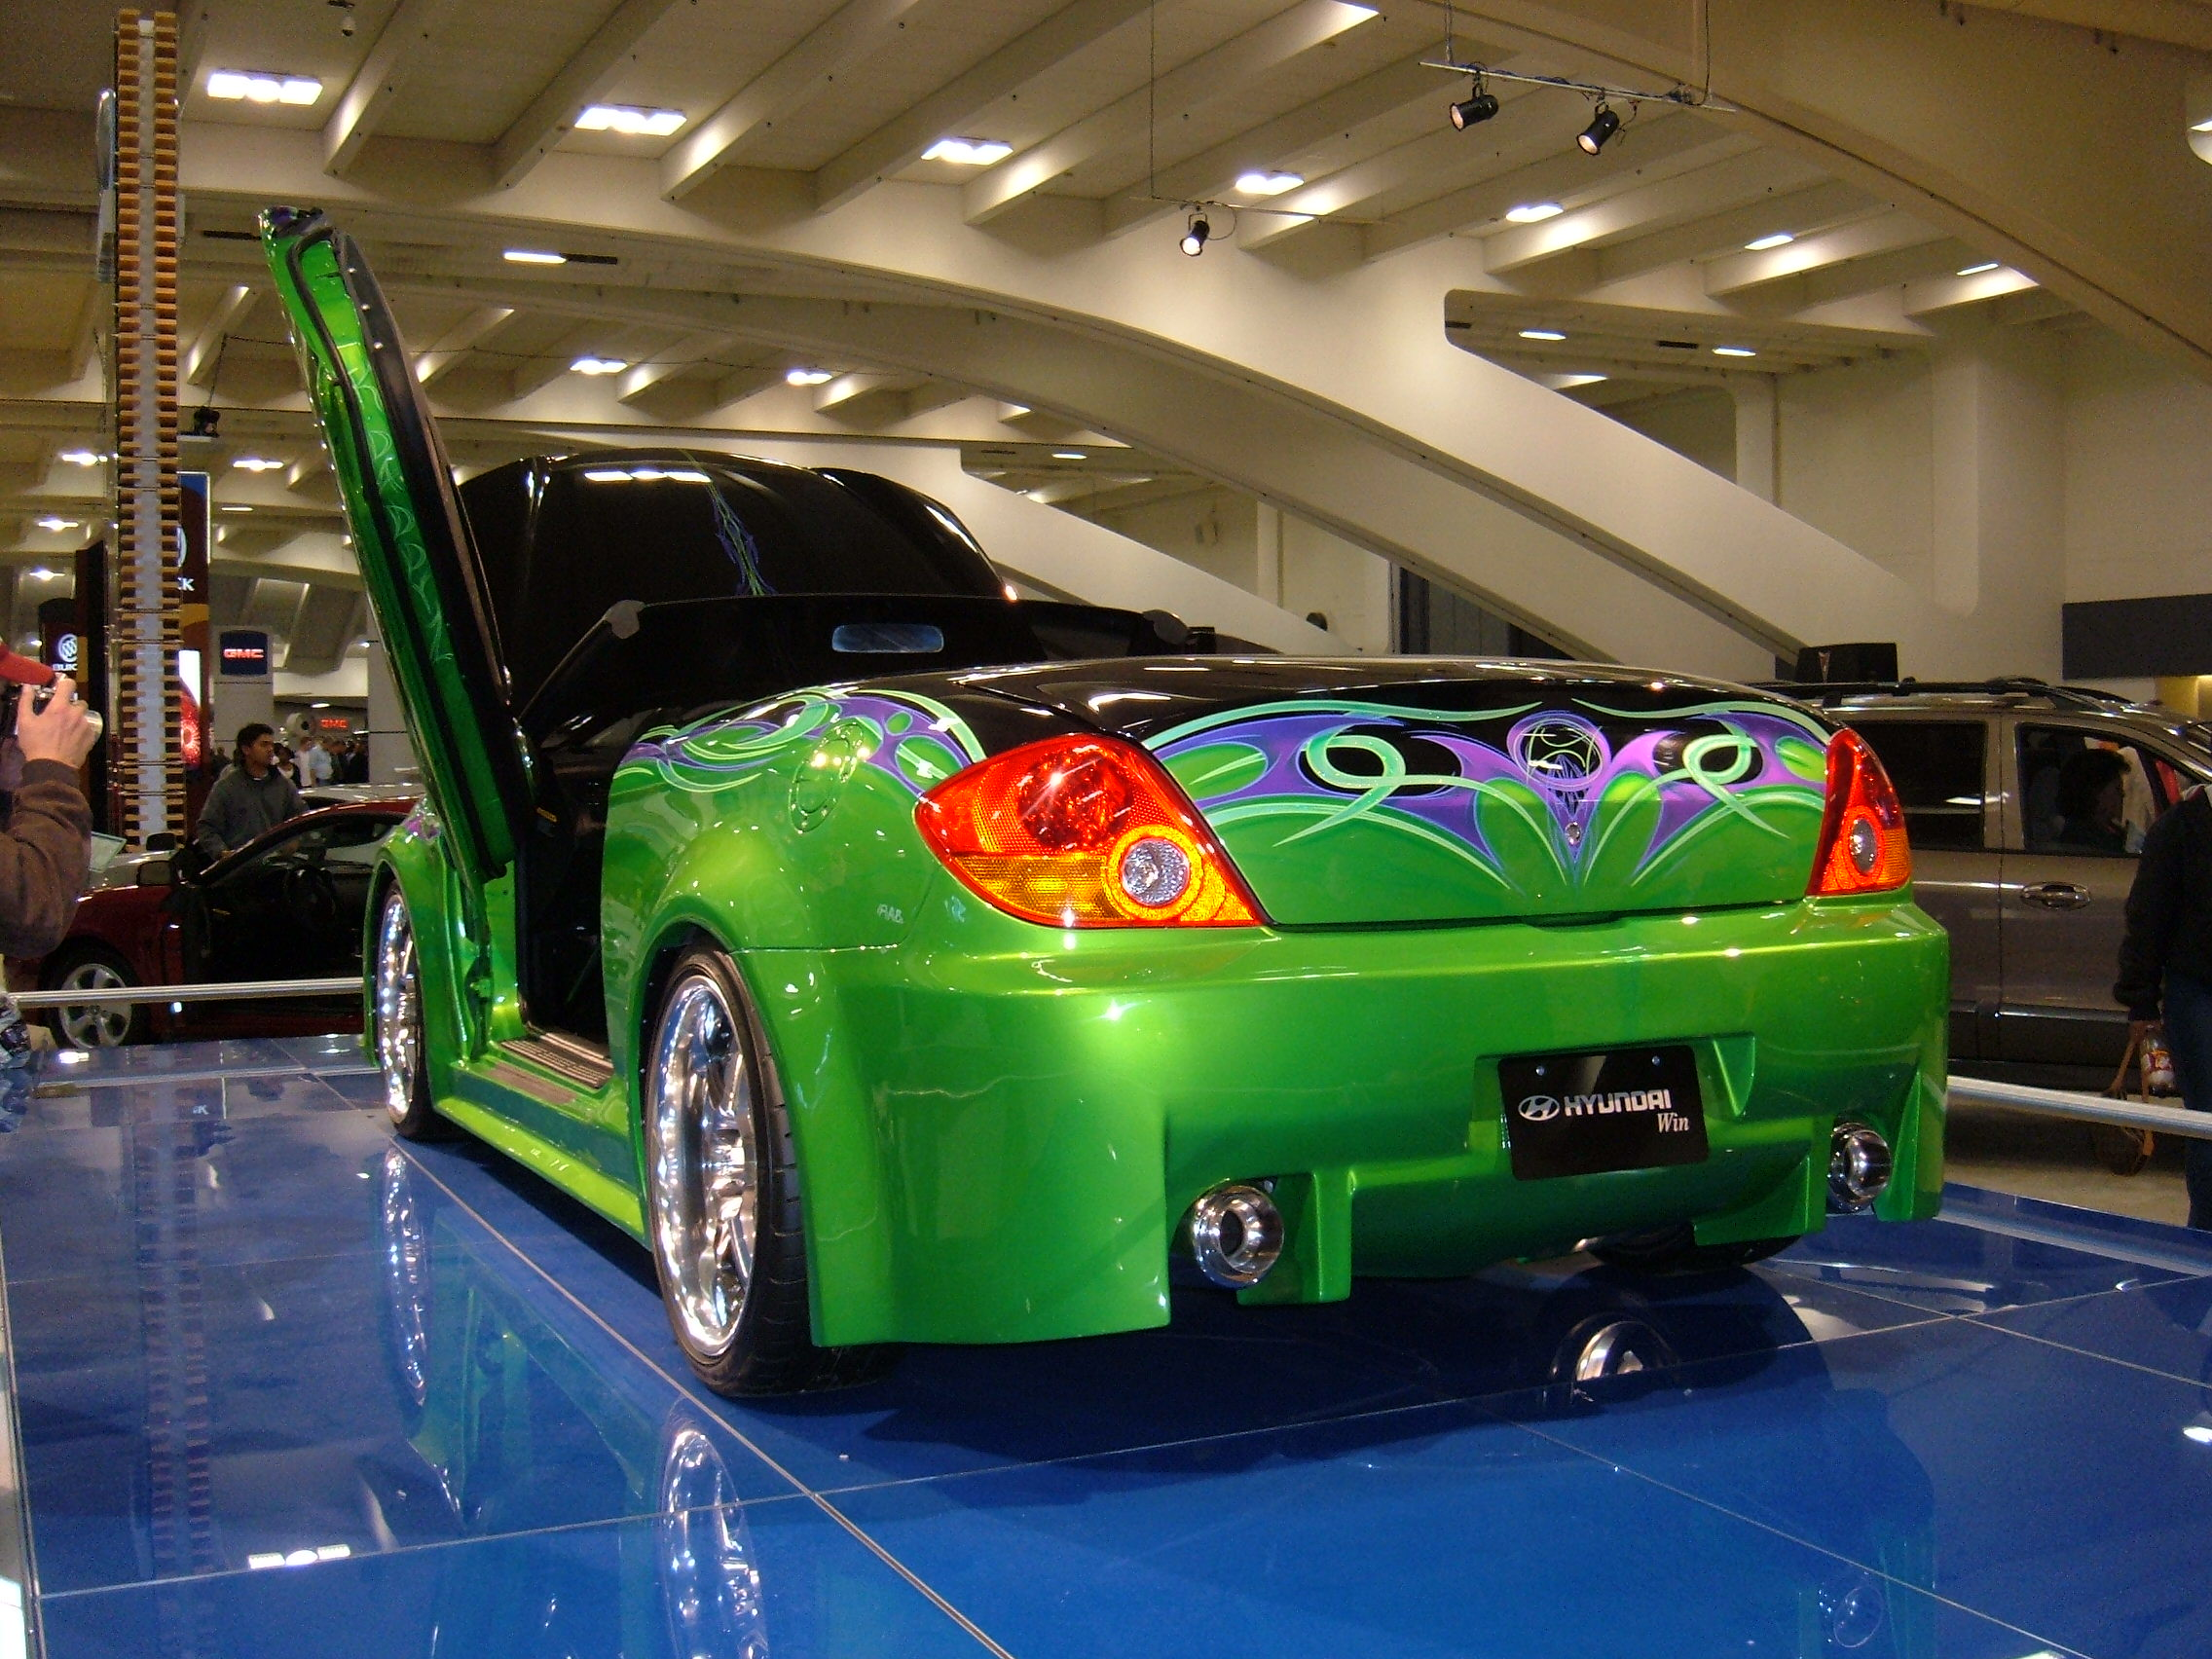 file 2005 customized green hyundai tiburon rear jpg wikimedia commons https commons wikimedia org wiki file 2005 customized green hyundai tiburon rear jpg